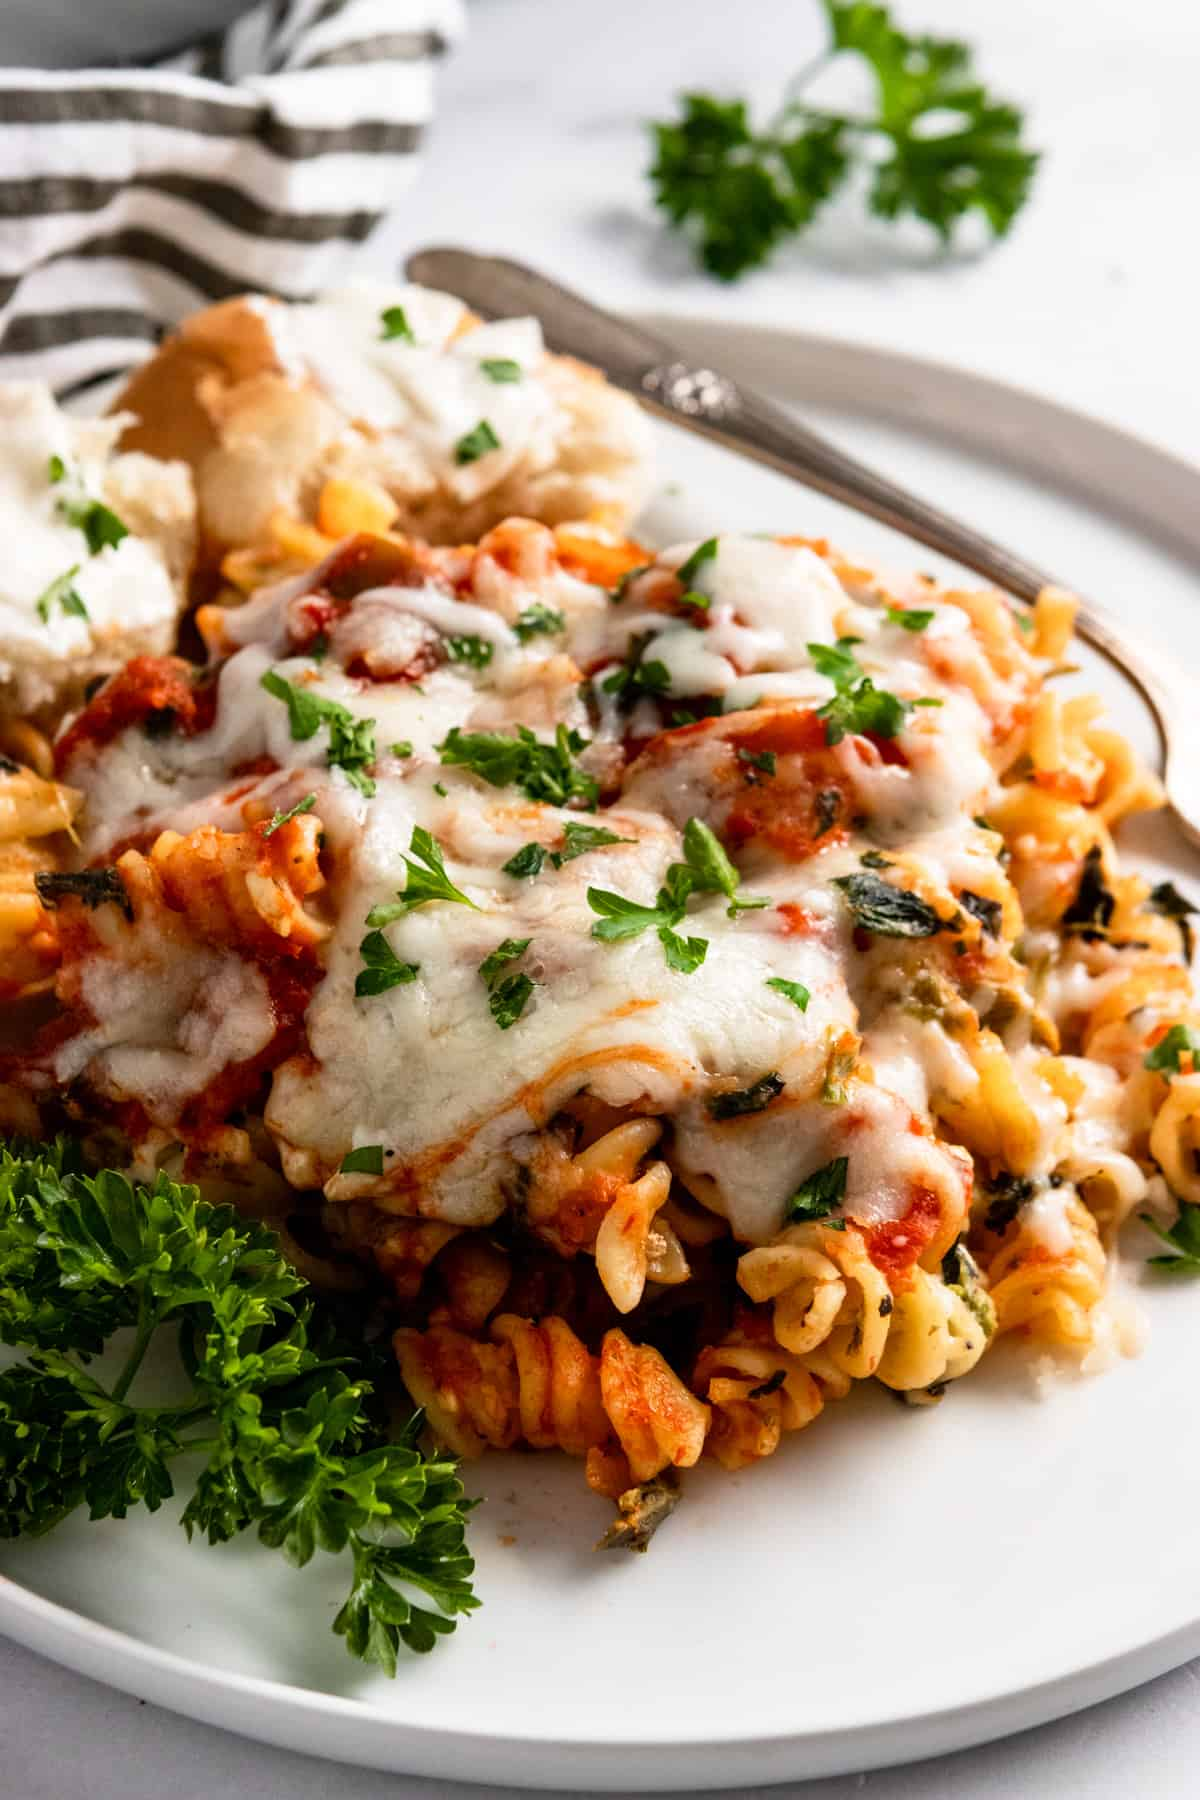 Easy baked pasta on white plate with parsley.